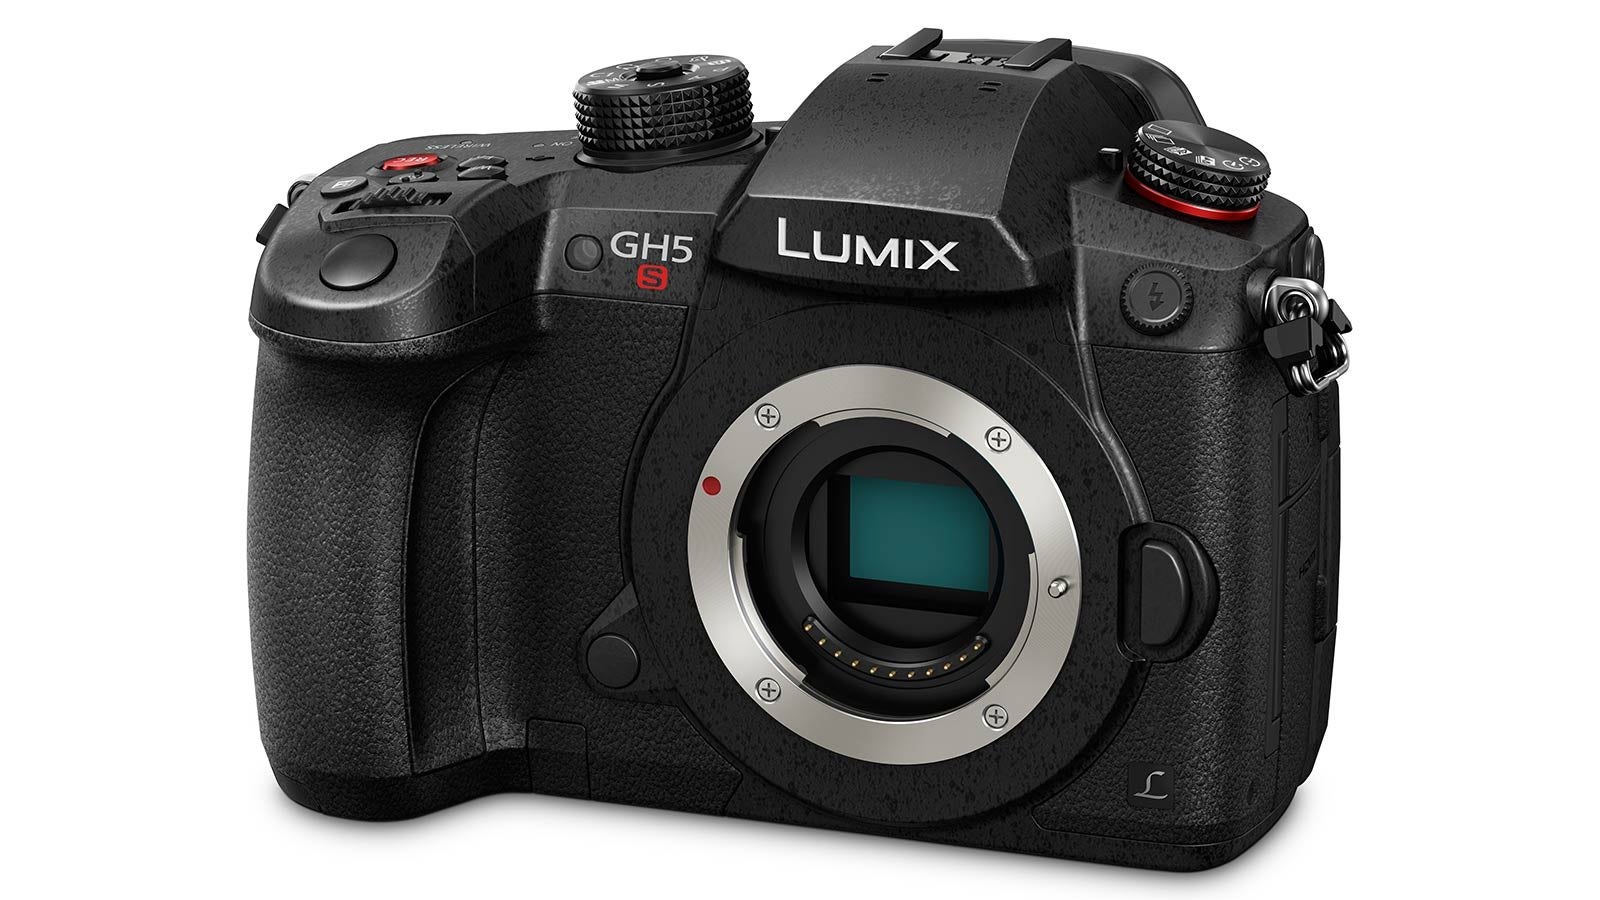 Panasonic Cut The Lumix GH5S' Resolution In Half To Get Even Better Low-Light Images